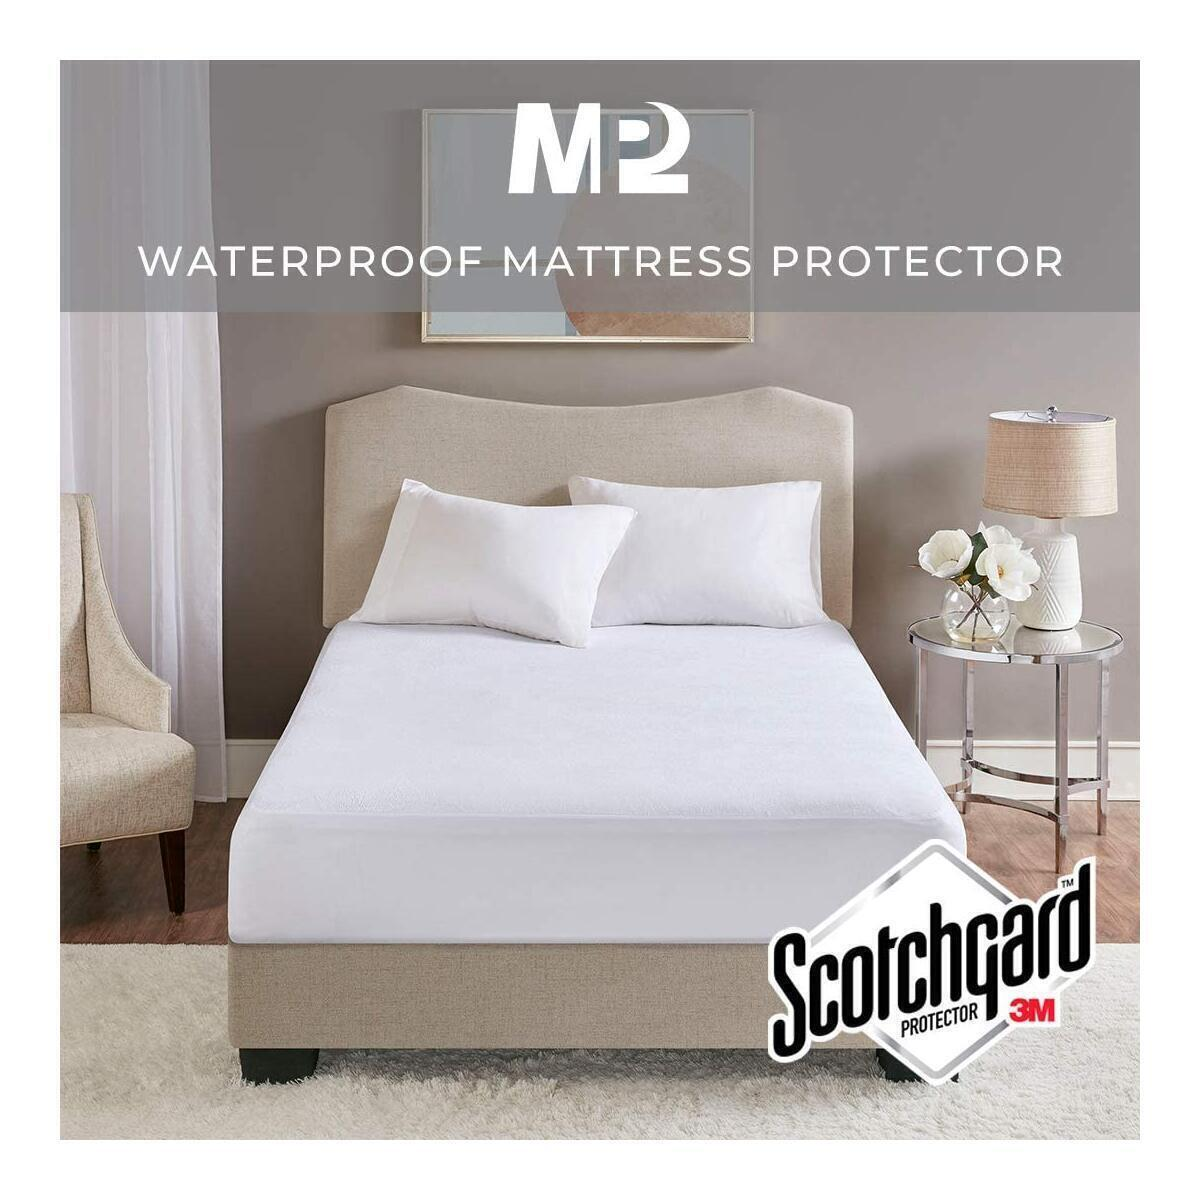 Waterproof Mattress Protector Full Size Bed Cover for Moving , Breathable Cooling Cotton Terry Deep Pocket - Fits 4